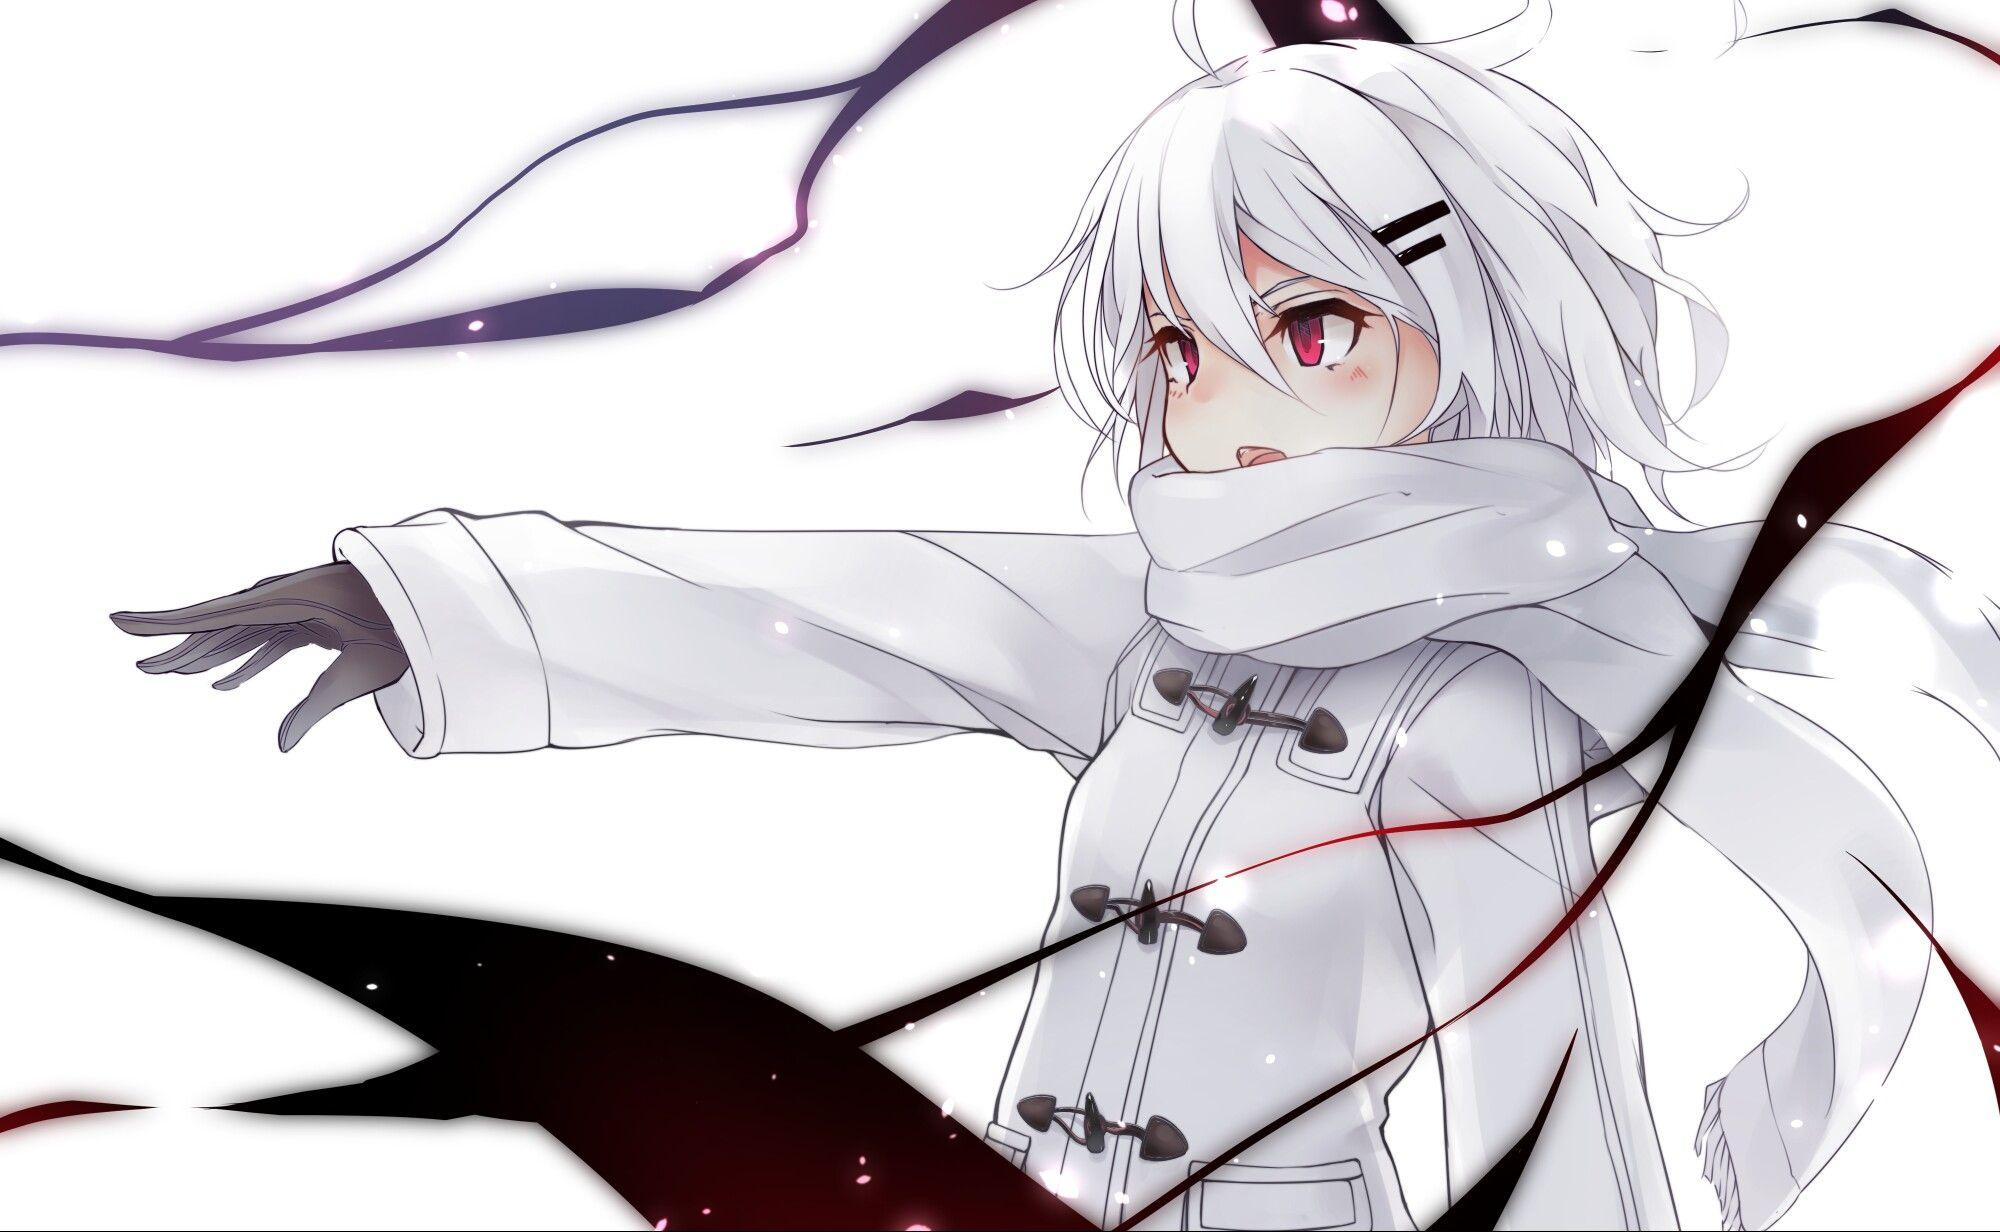 Kawaii Anime Girl White Hair And Red Eyes Wallpapers - Wallpaper Cave